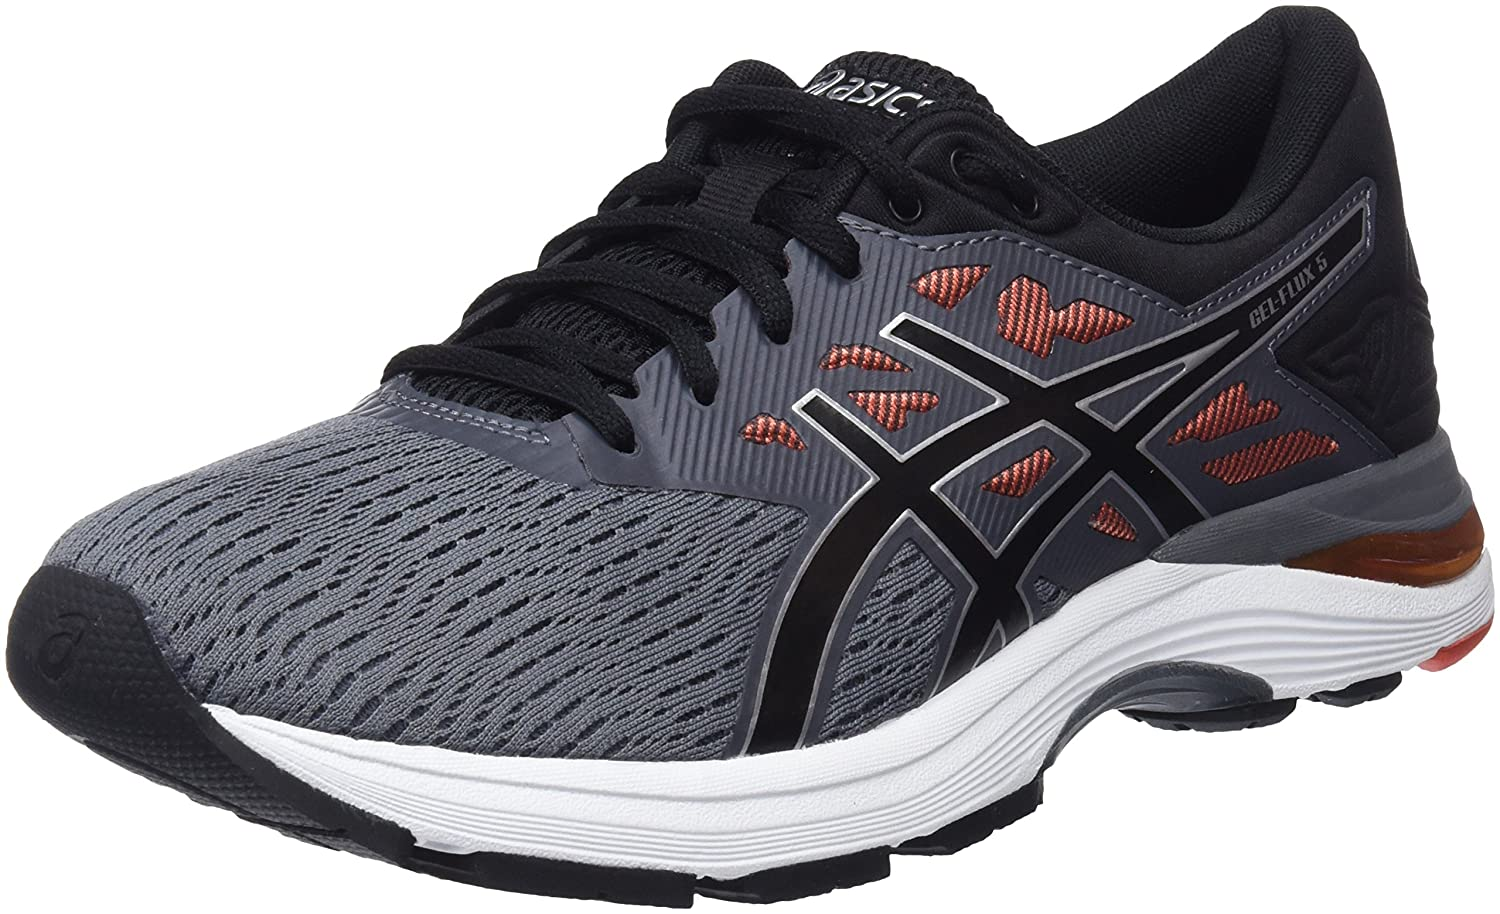 ASICS Gel-Flux 5, Chaussures de Running Tomato Homme 41.5 EU|Multicolore (Carbon/Black/Cherry Tomato Running 9790) aa621e